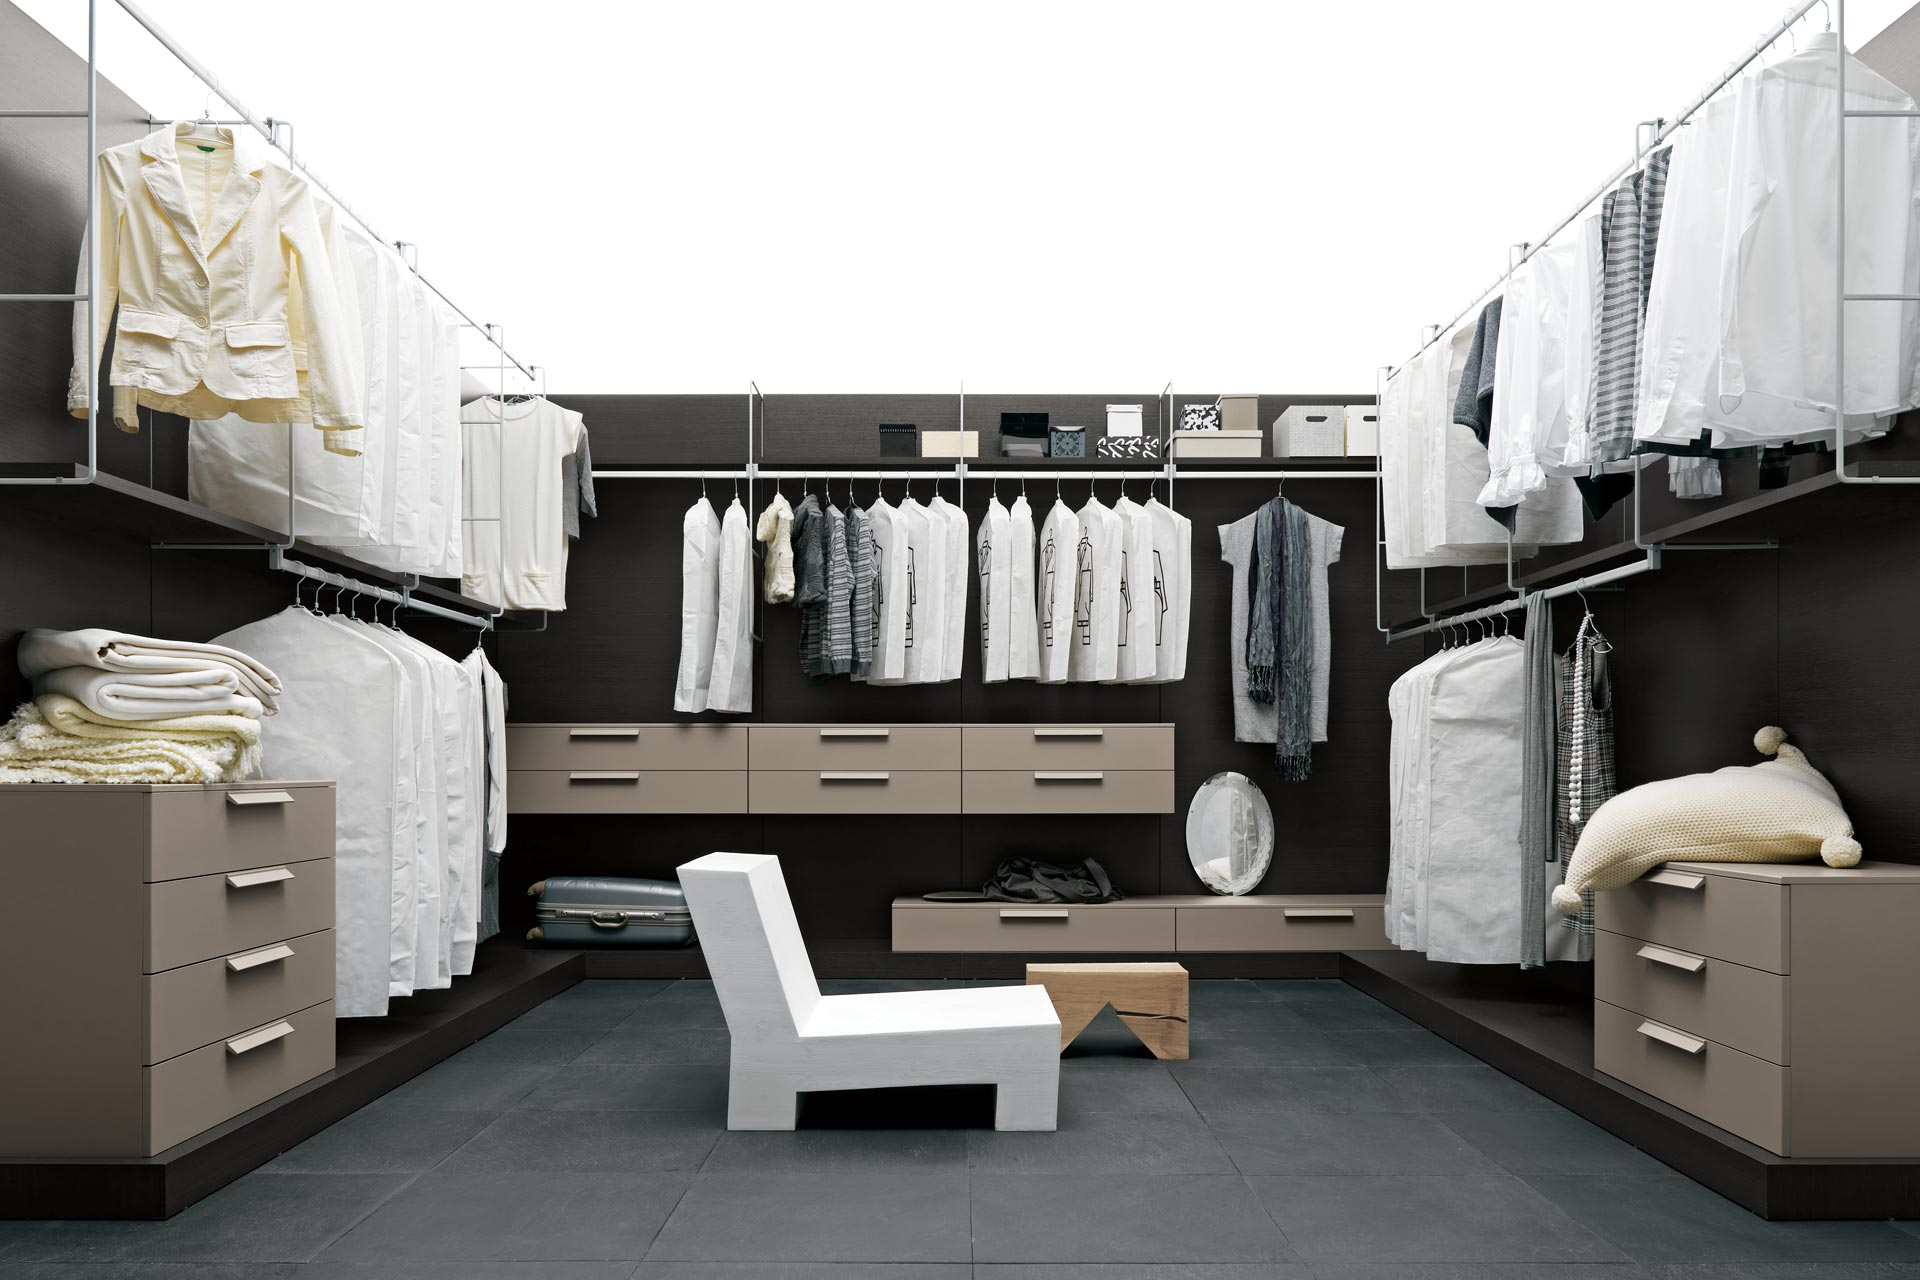 bedroom-furniture-interior-kidsroom-cool-simple-brown-wooden-closet-with-drawers-and-hanger-clothes-cool-walk-in-closets-design-ideas.jpg